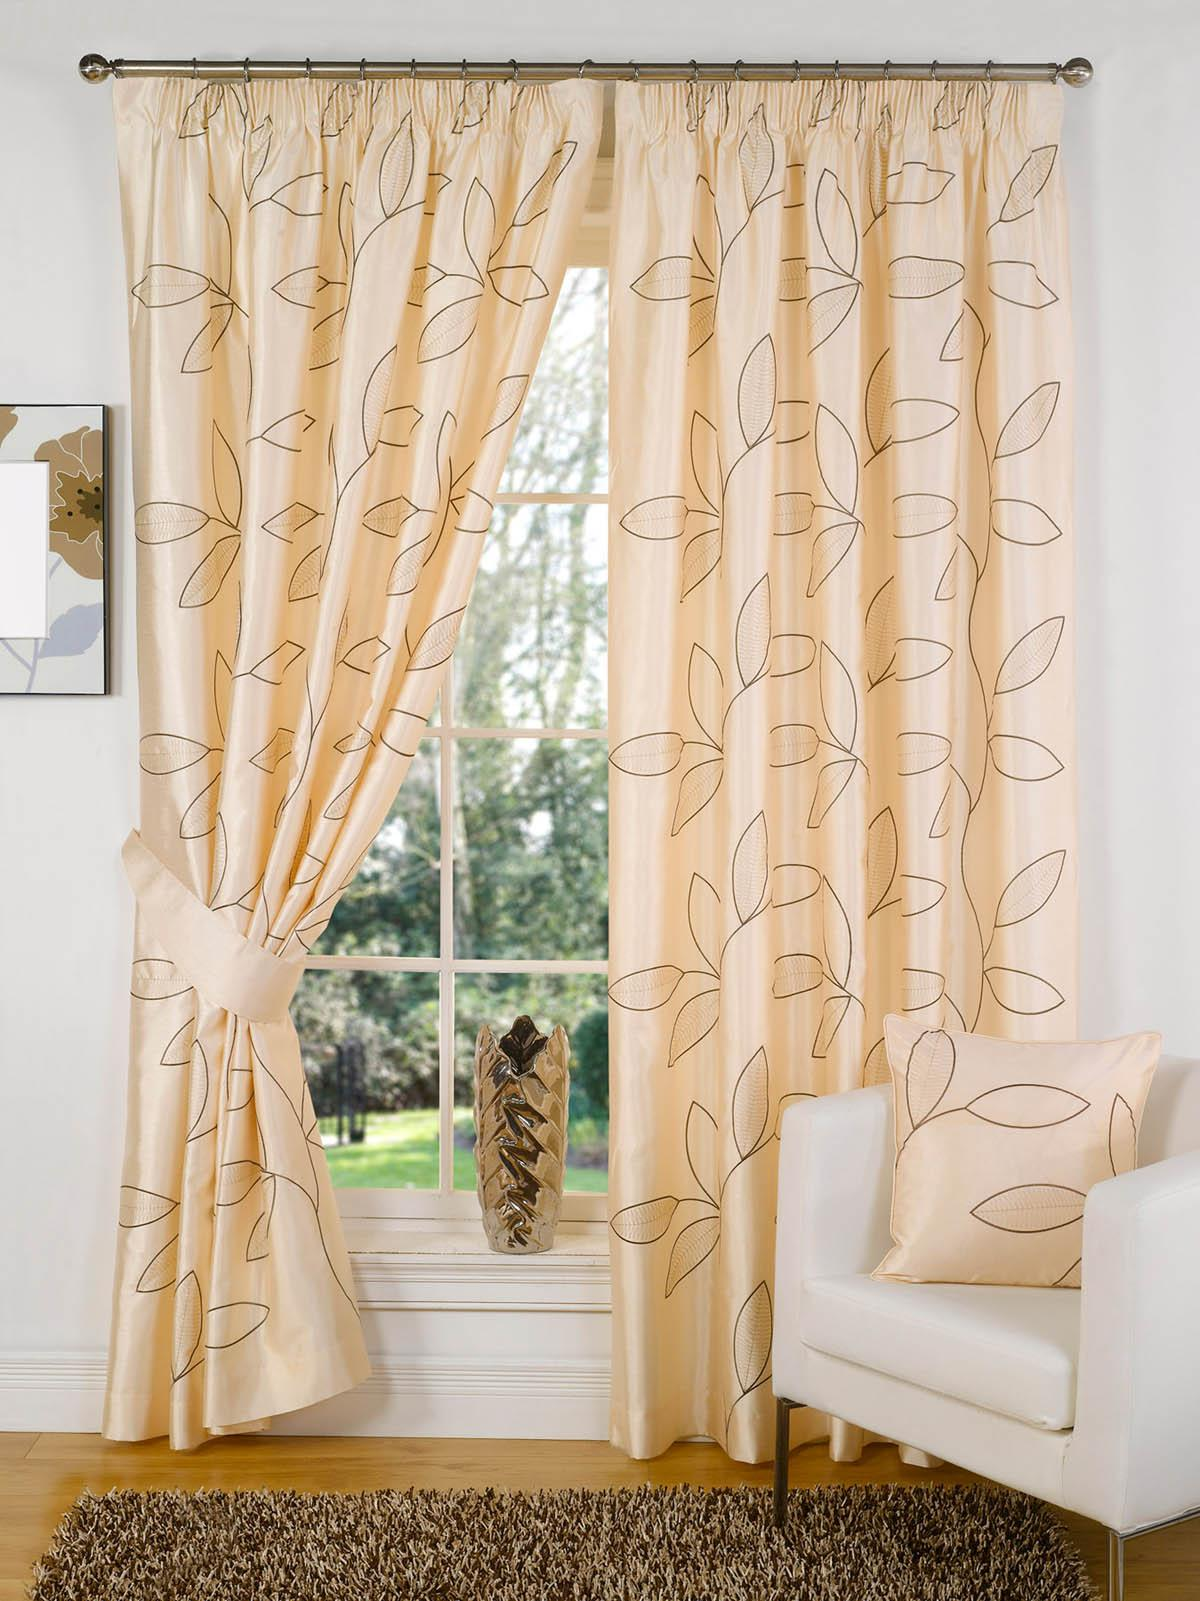 Buy cheap leaf curtain compare curtains blinds prices for Best place to buy fabric for curtains